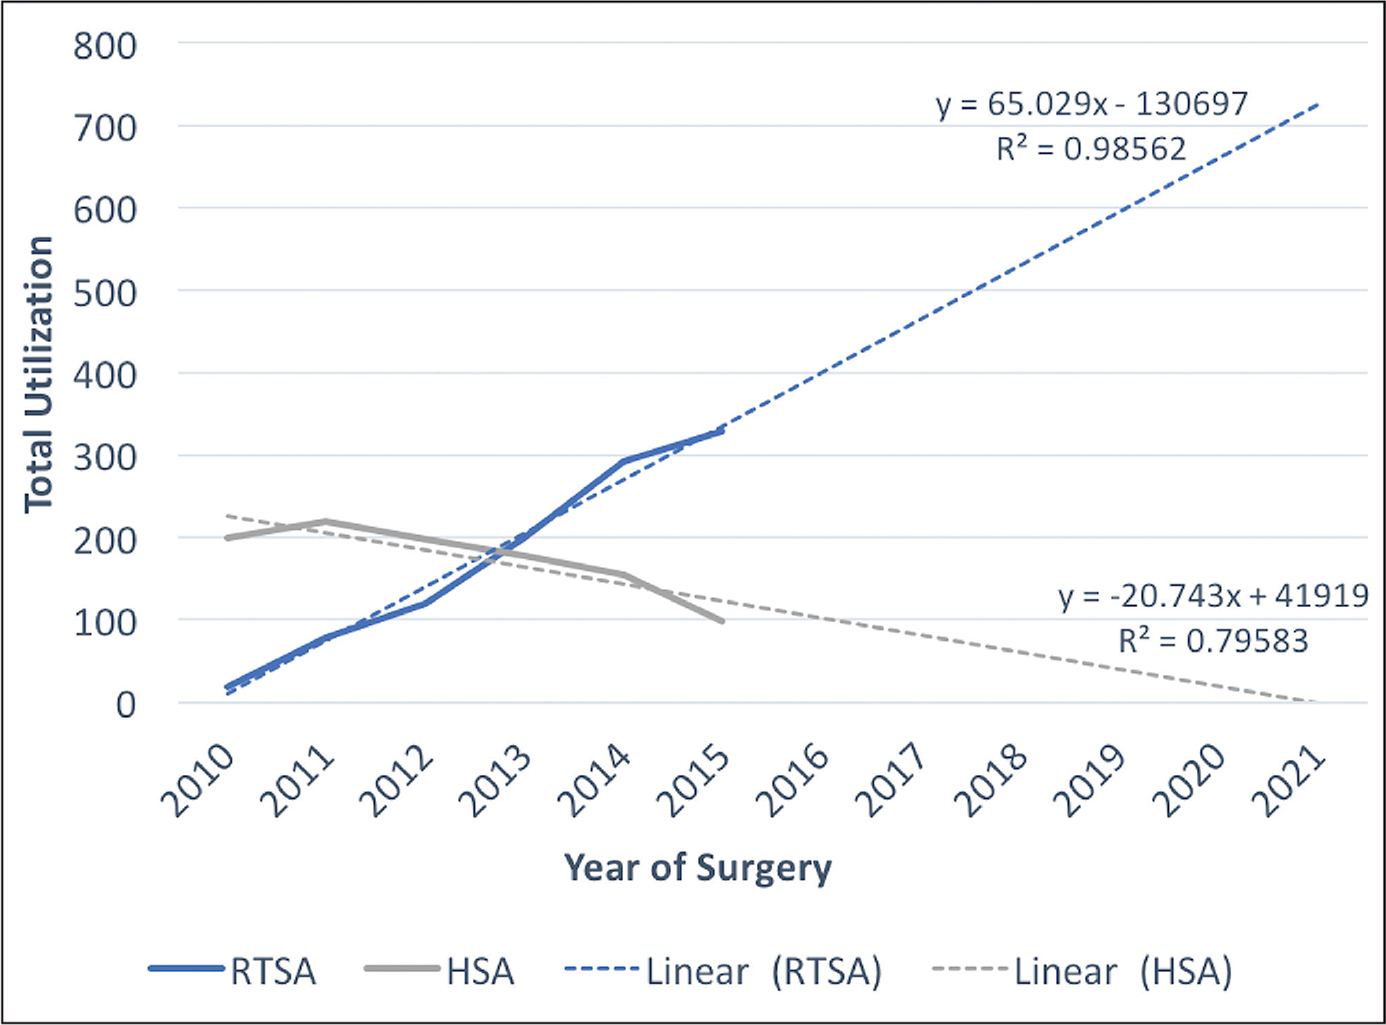 Trends in total use of reverse total shoulder arthroplasty (RTSA) vs hemiarthroplasty (HSA) from 2010 to 2015.